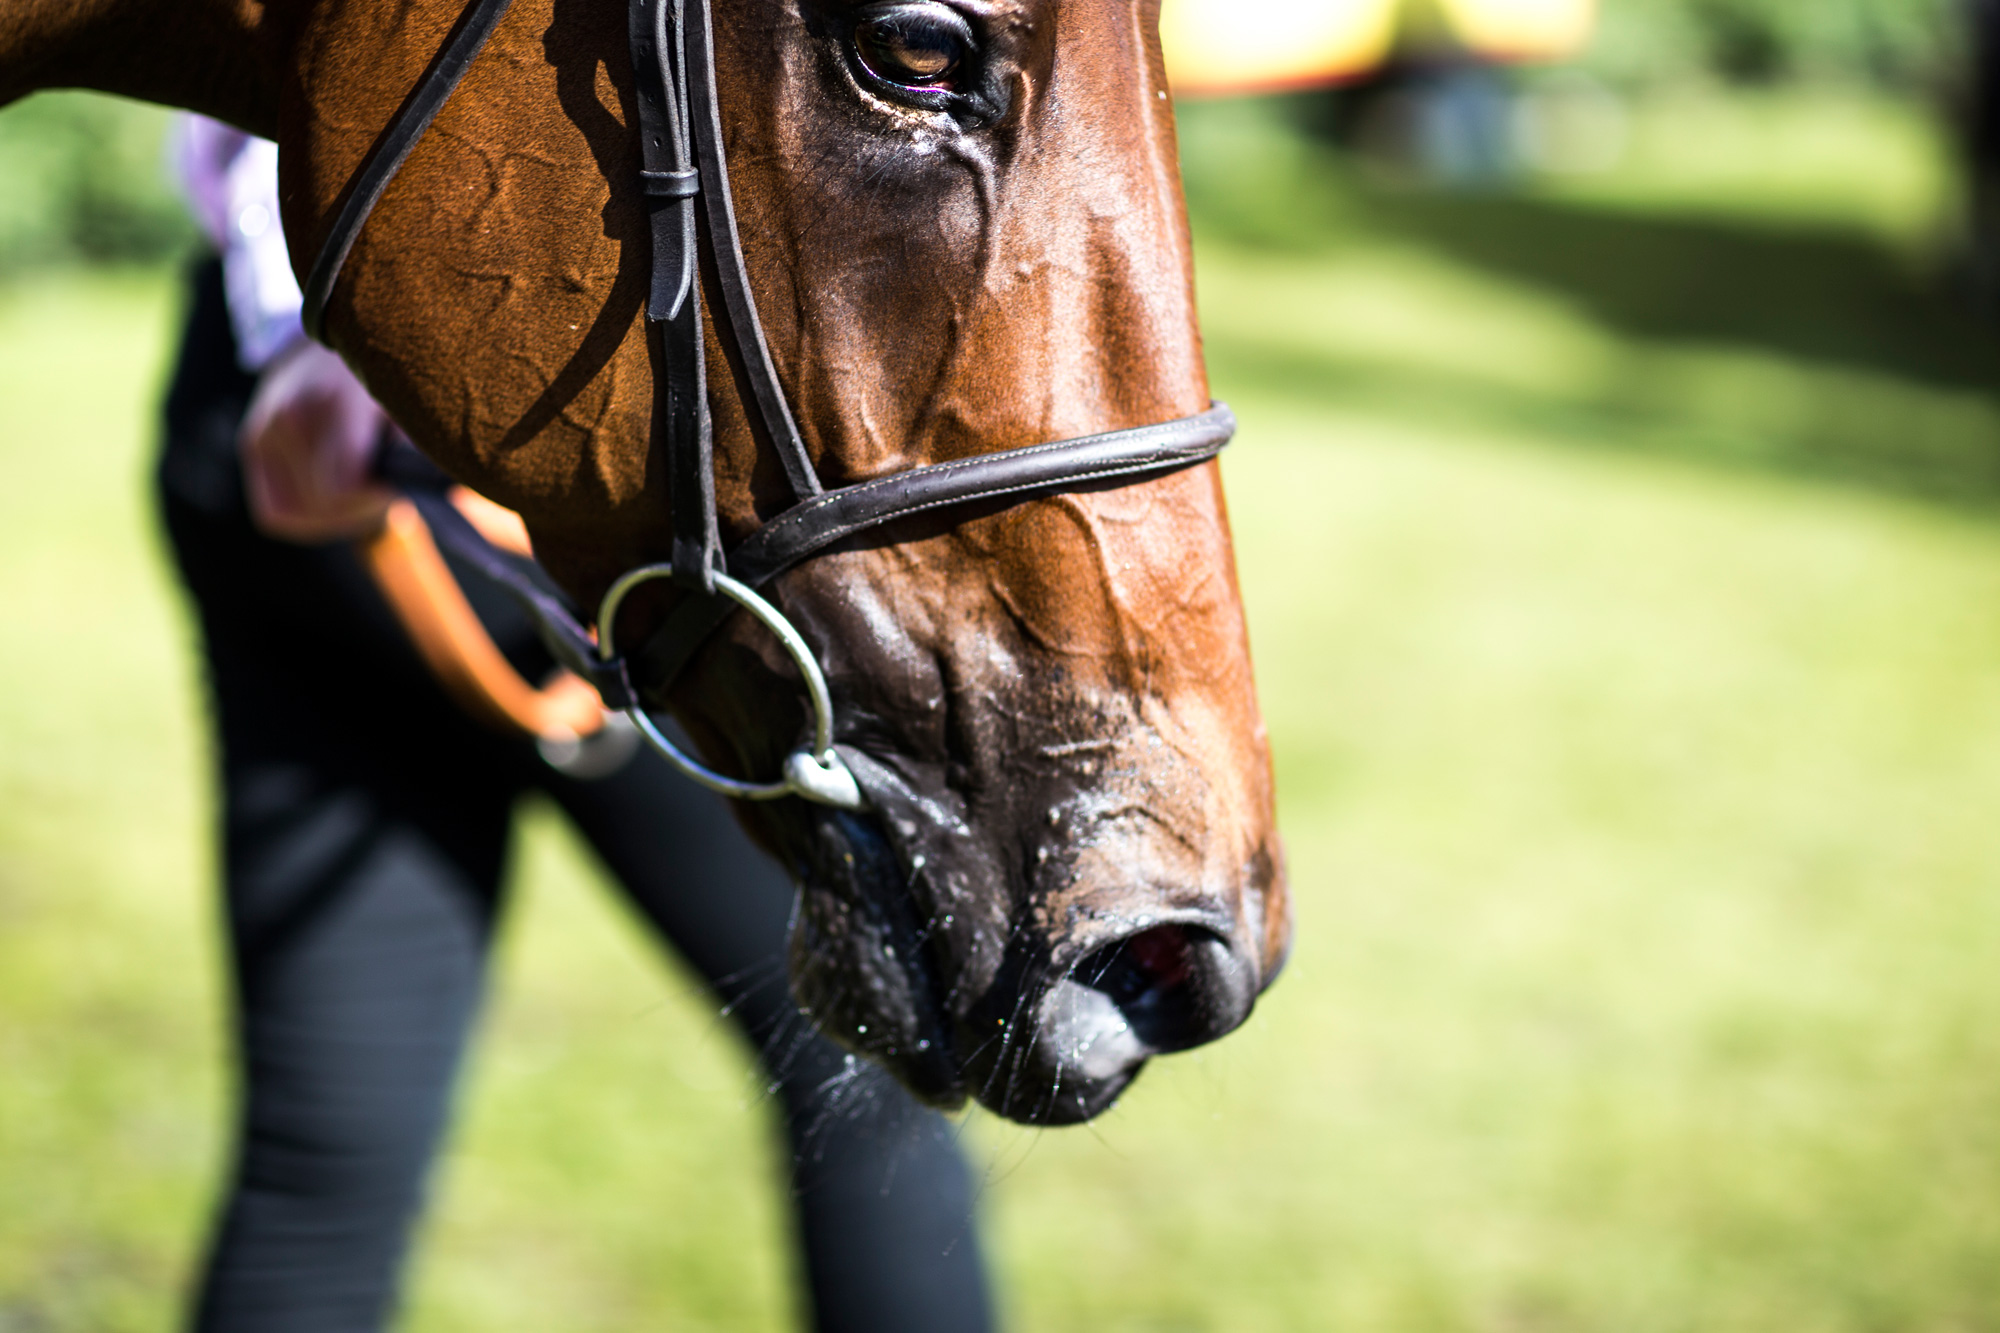 horse portrait at Glorious Goodwood